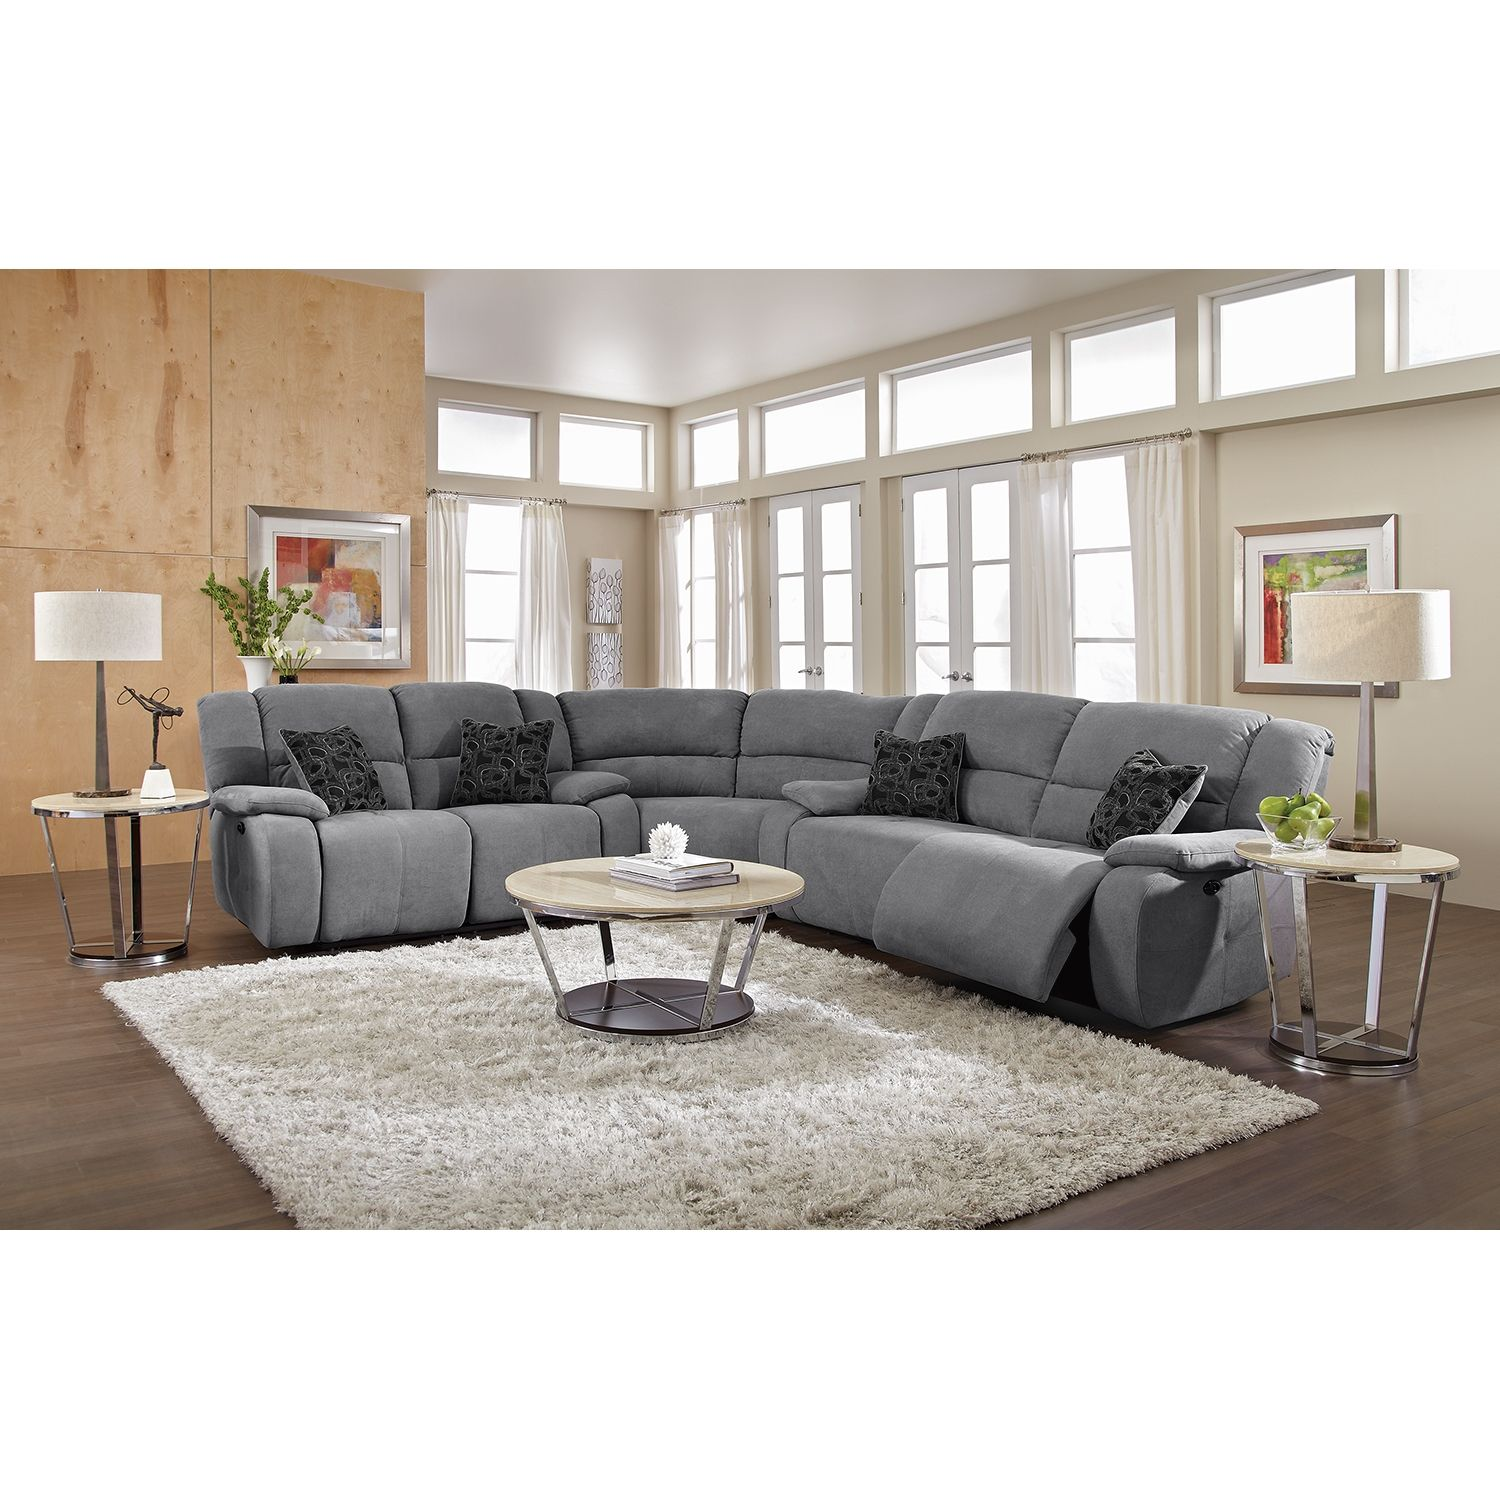 Love this couch gray is awesome future living room for Pinterest living room furniture